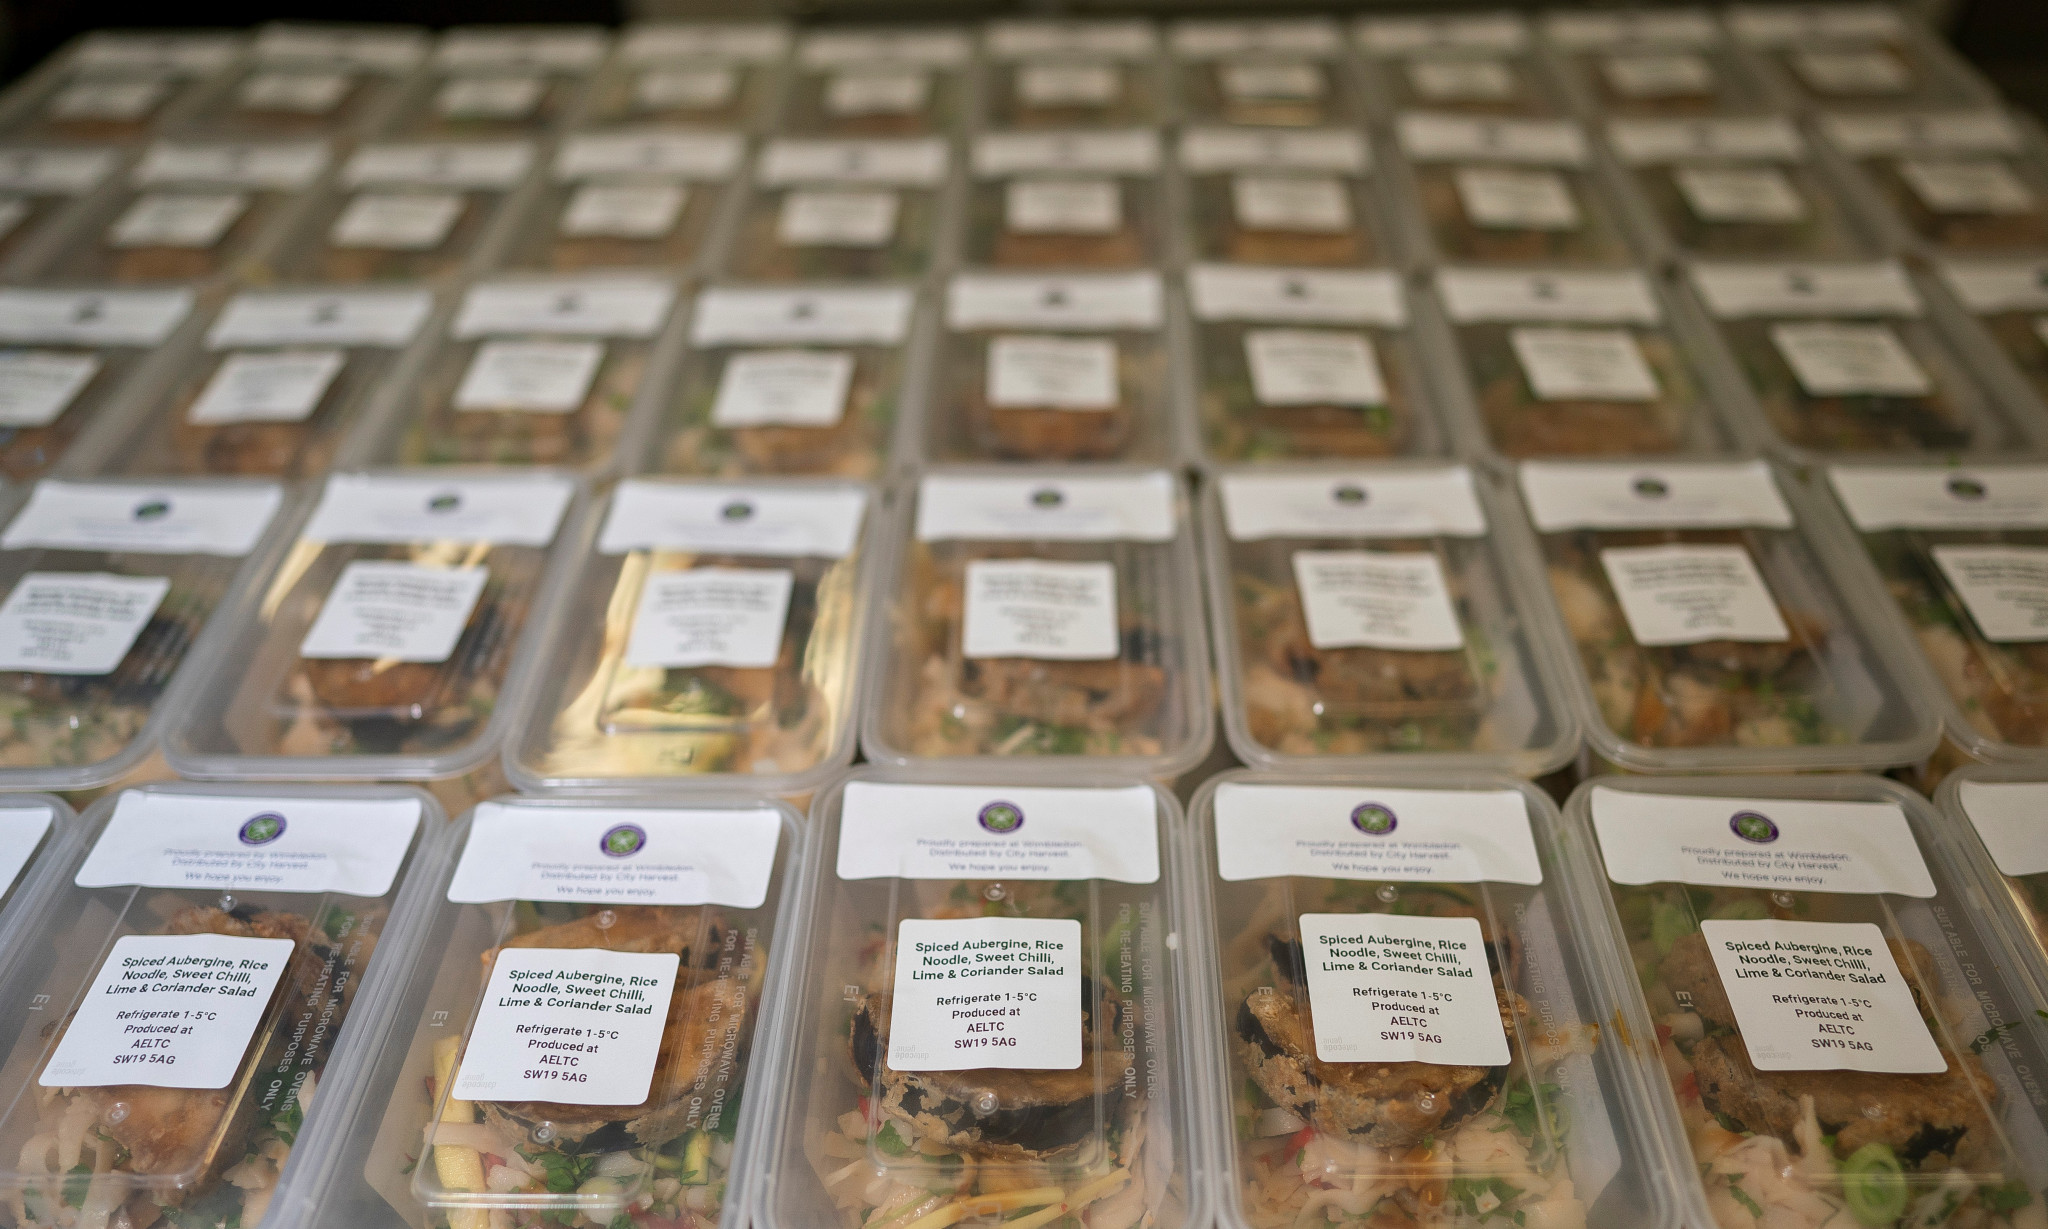 A total of 200 hot meals a day are being packaged for distribution ©AELTC/Bob Martin